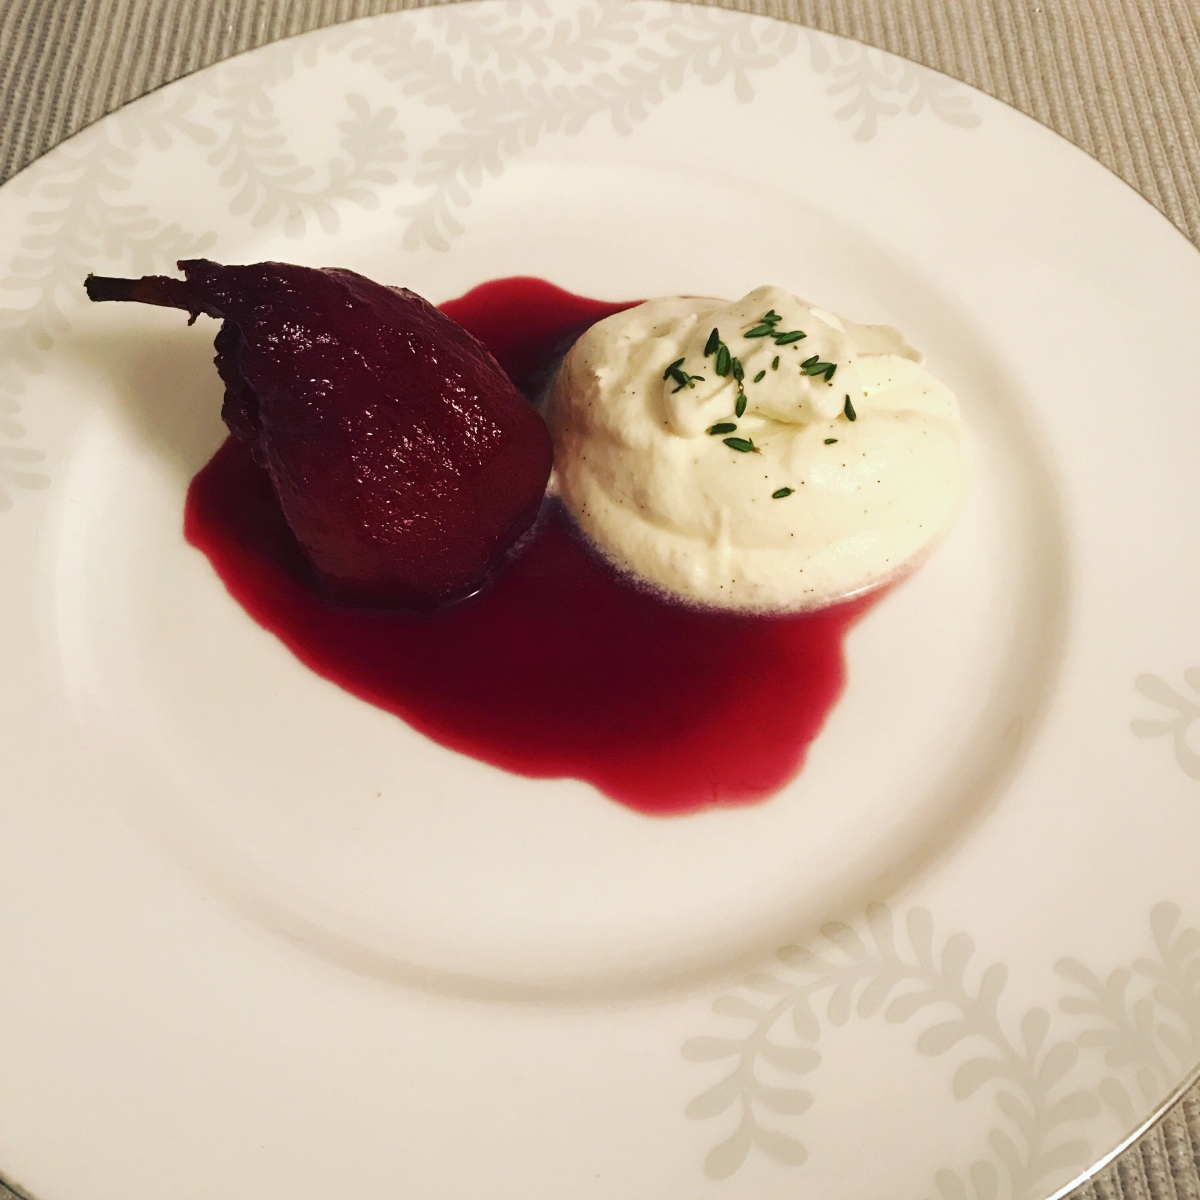 Poached pear with vanilla and mascarponemousse